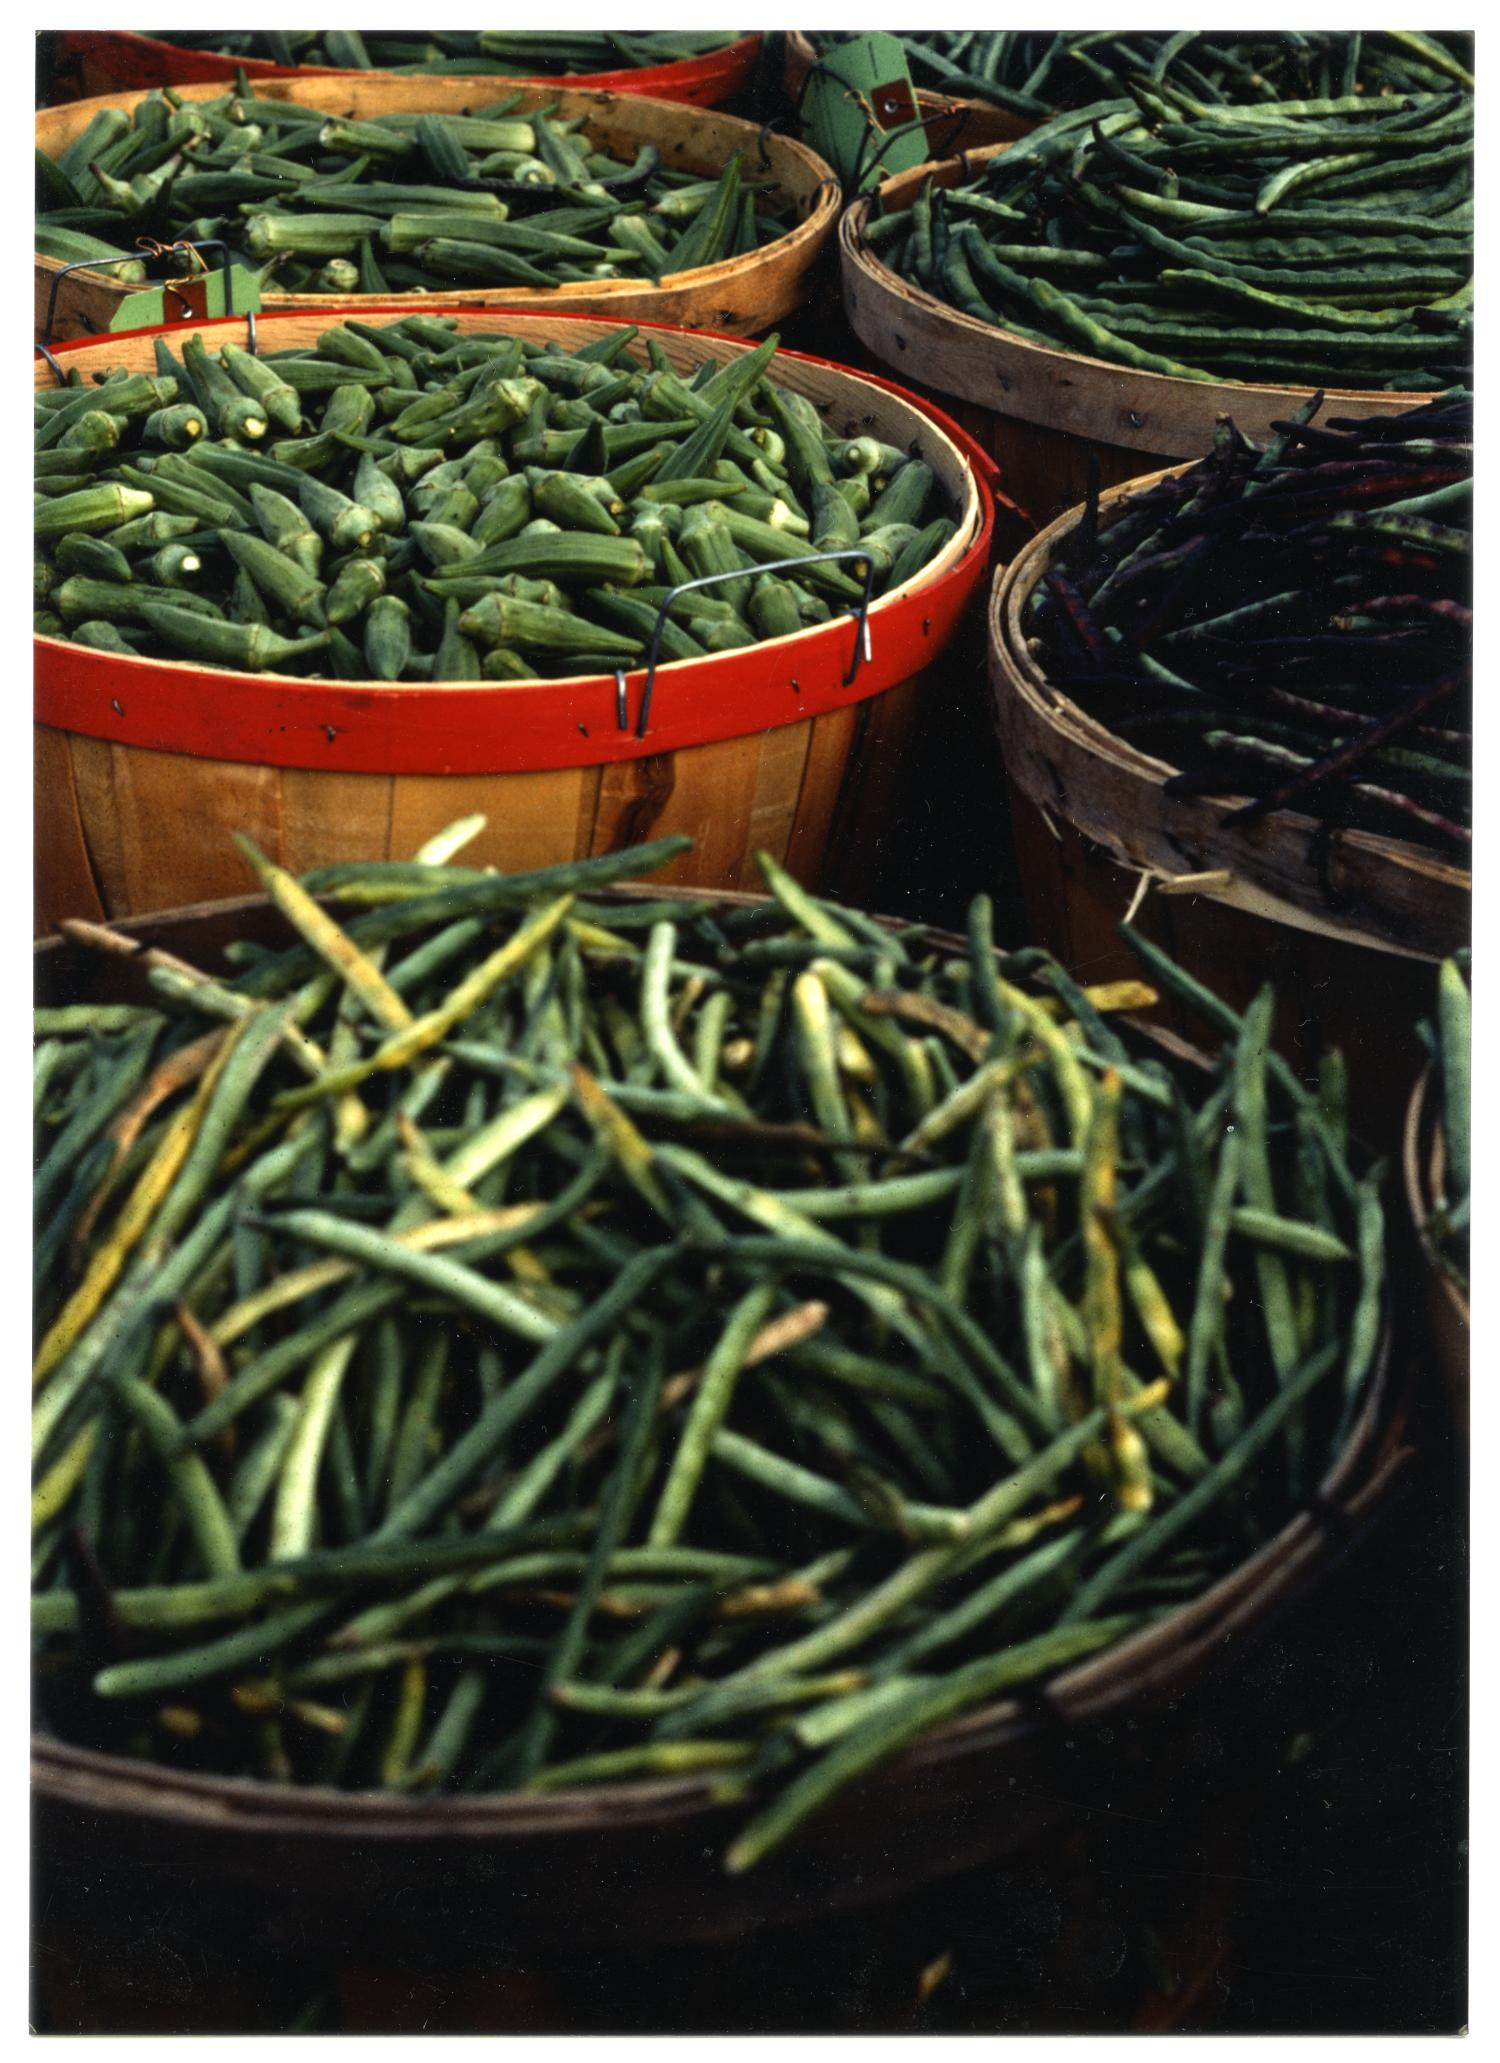 [Display of Green Beans and Okra]                                                                                                      [Sequence #]: 1 of 2